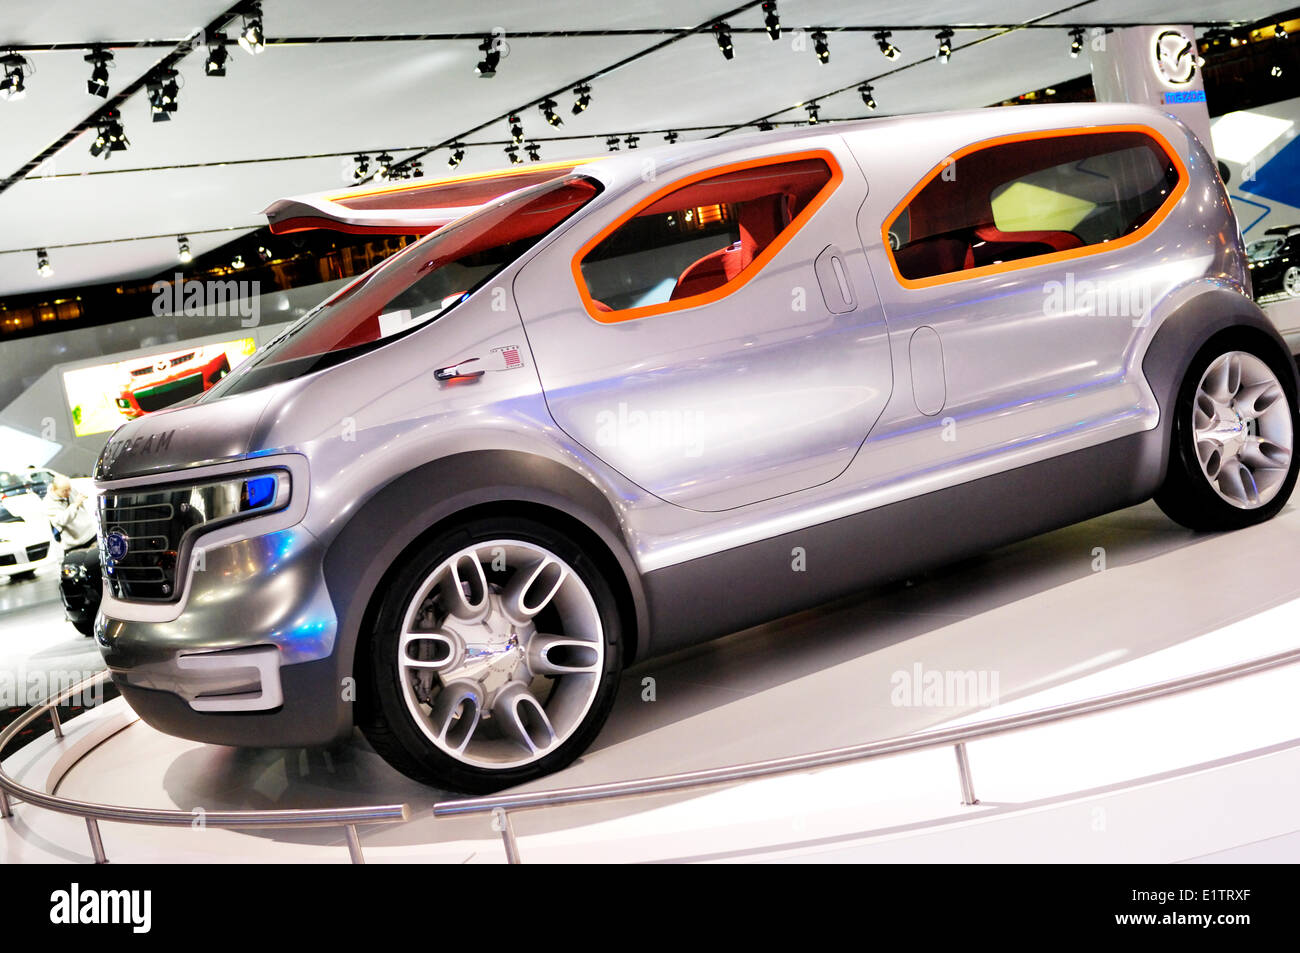 Ford Airstream concept car crossover futuriste powered by HySeries Drive plug-in hybride hydrogène les piles Photo Stock